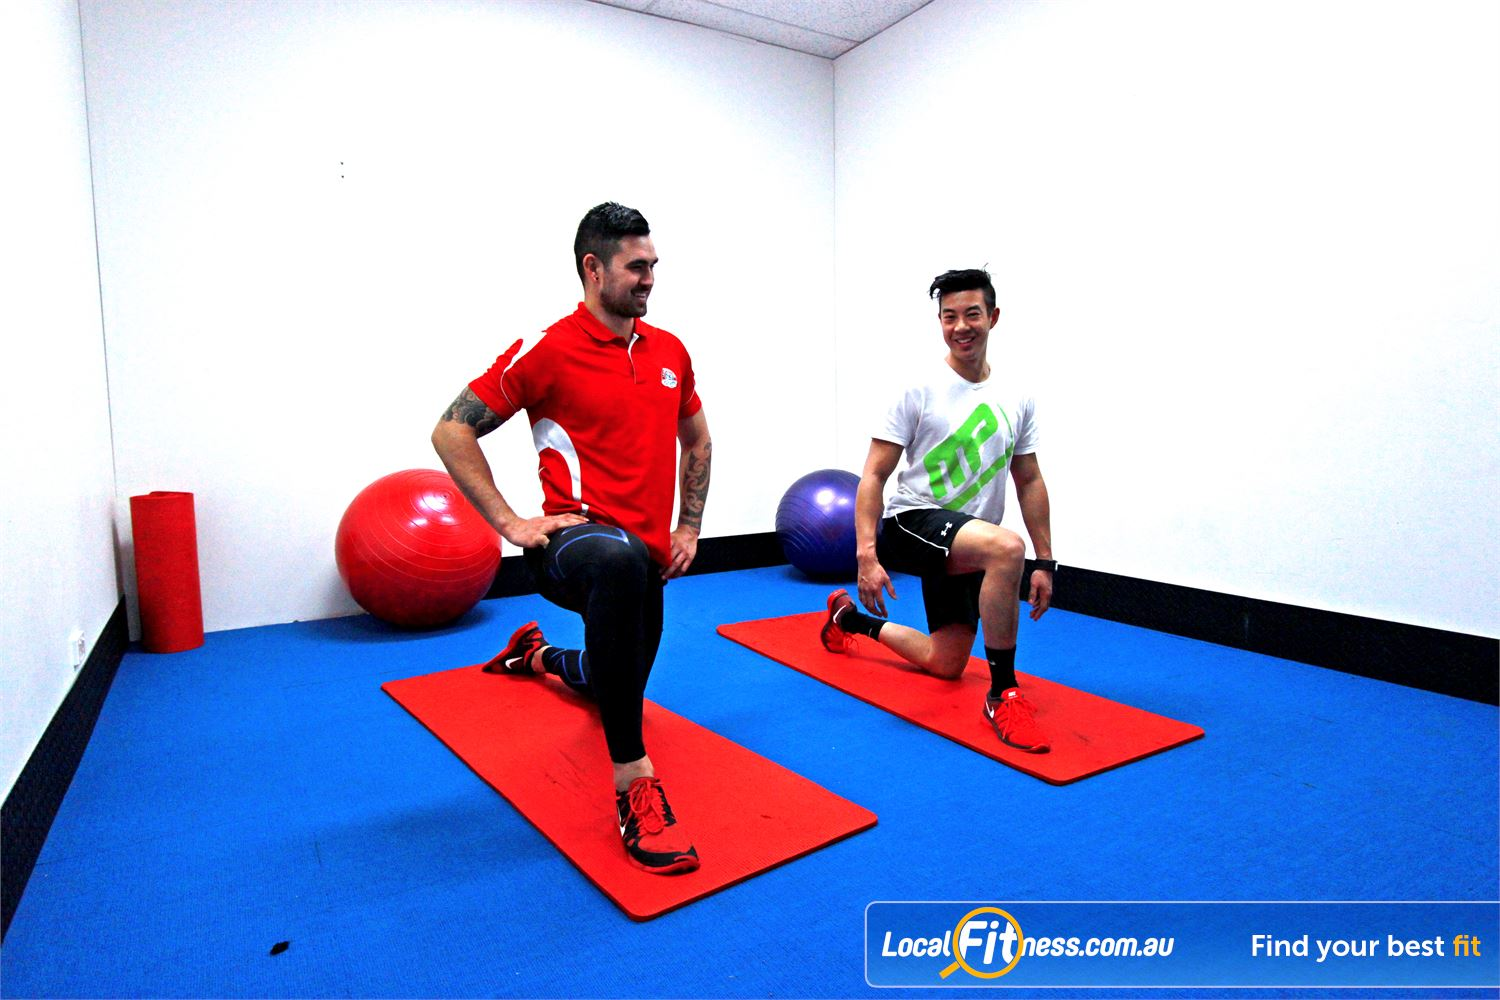 Carlton Fitness Gym Near Brunswick Dedicated abs and stretching zone with fitballs and mats.